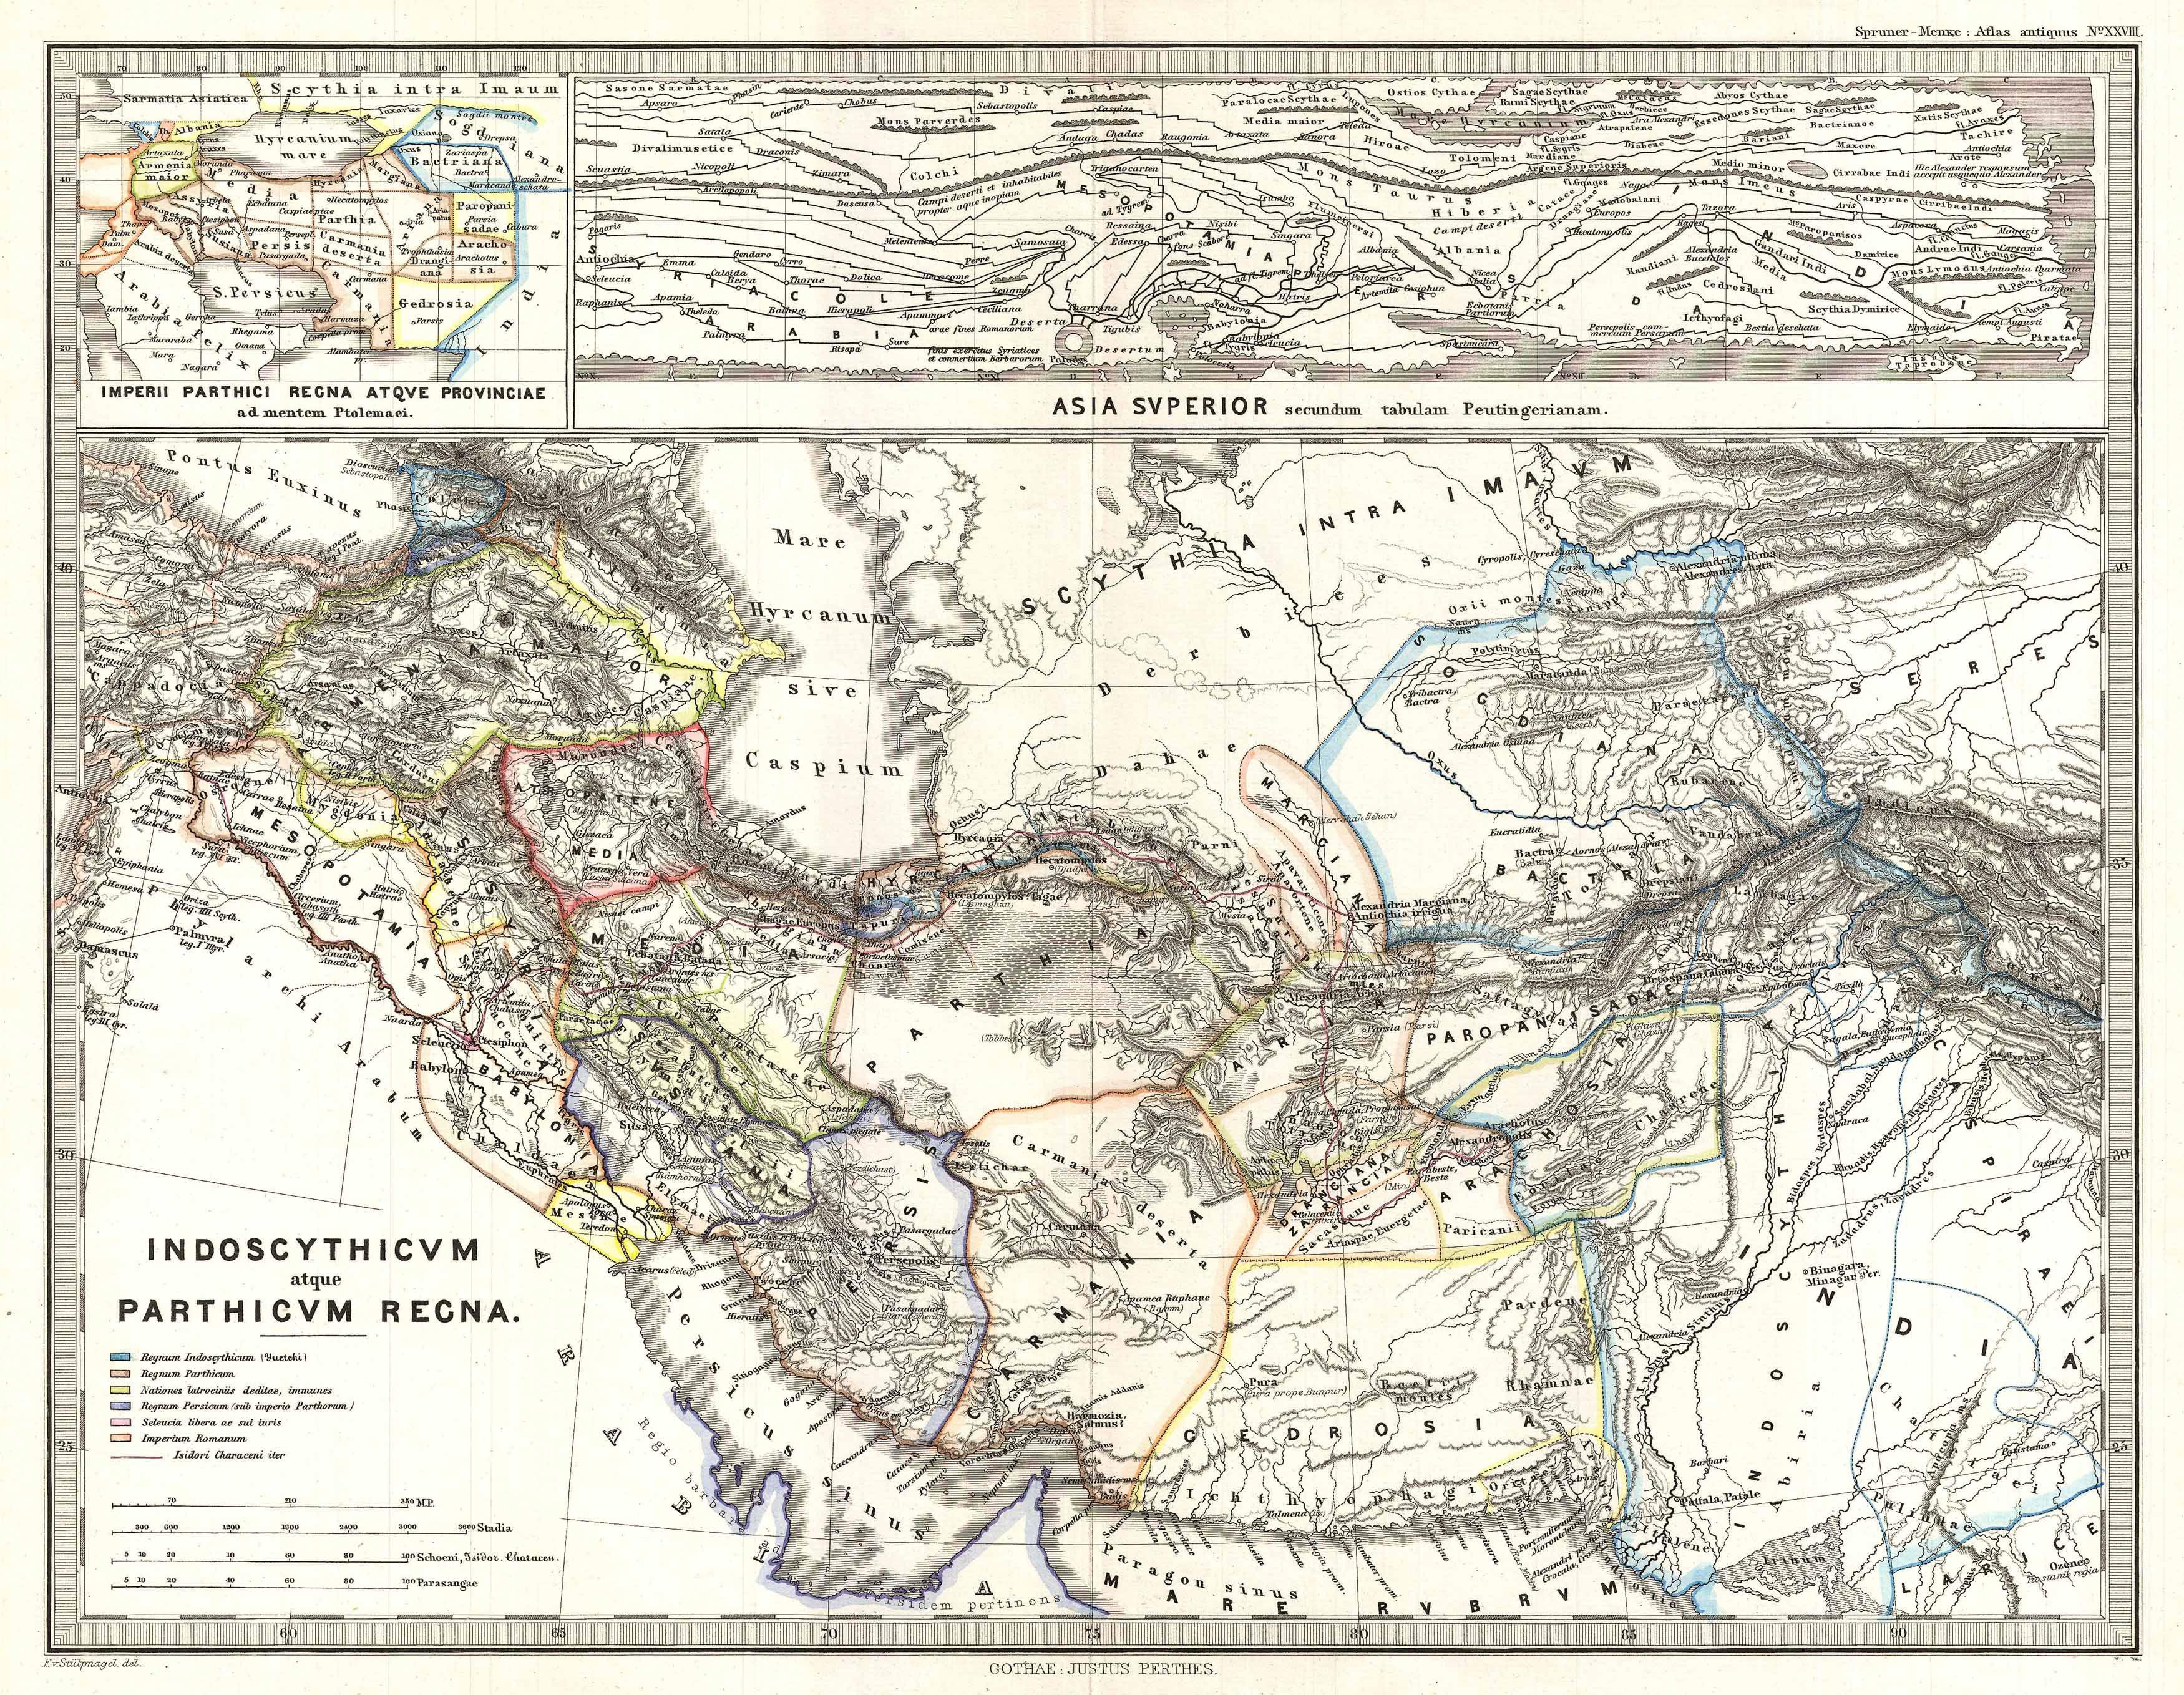 Maps Of Antiquity File:1865 Spruner Map of Persia in Antiquity   Geographicus  Maps Of Antiquity